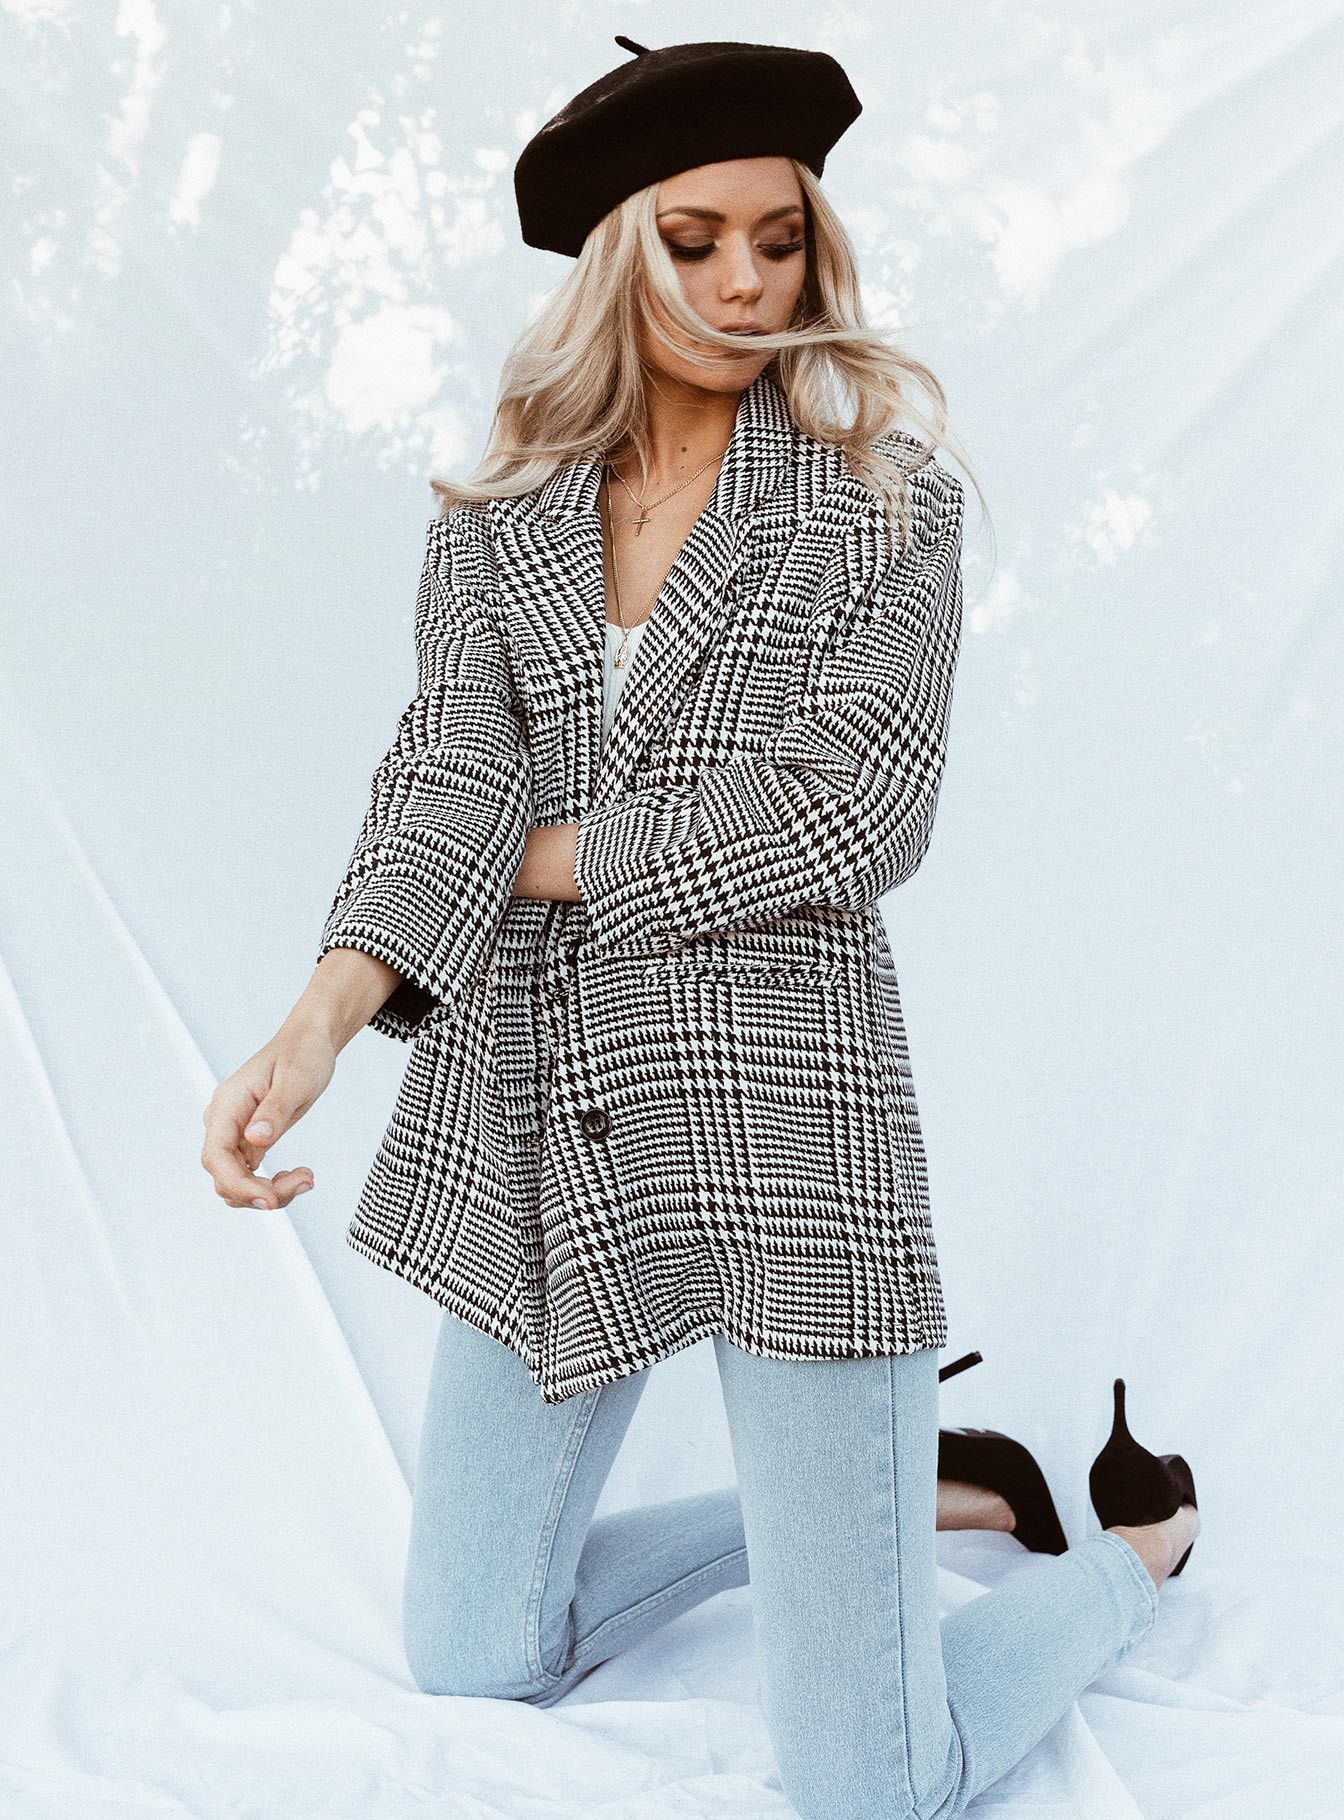 f045df4b8 The Bella Blazer | OUTFIT INSPIRATION | Princess polly, Jackets for ...